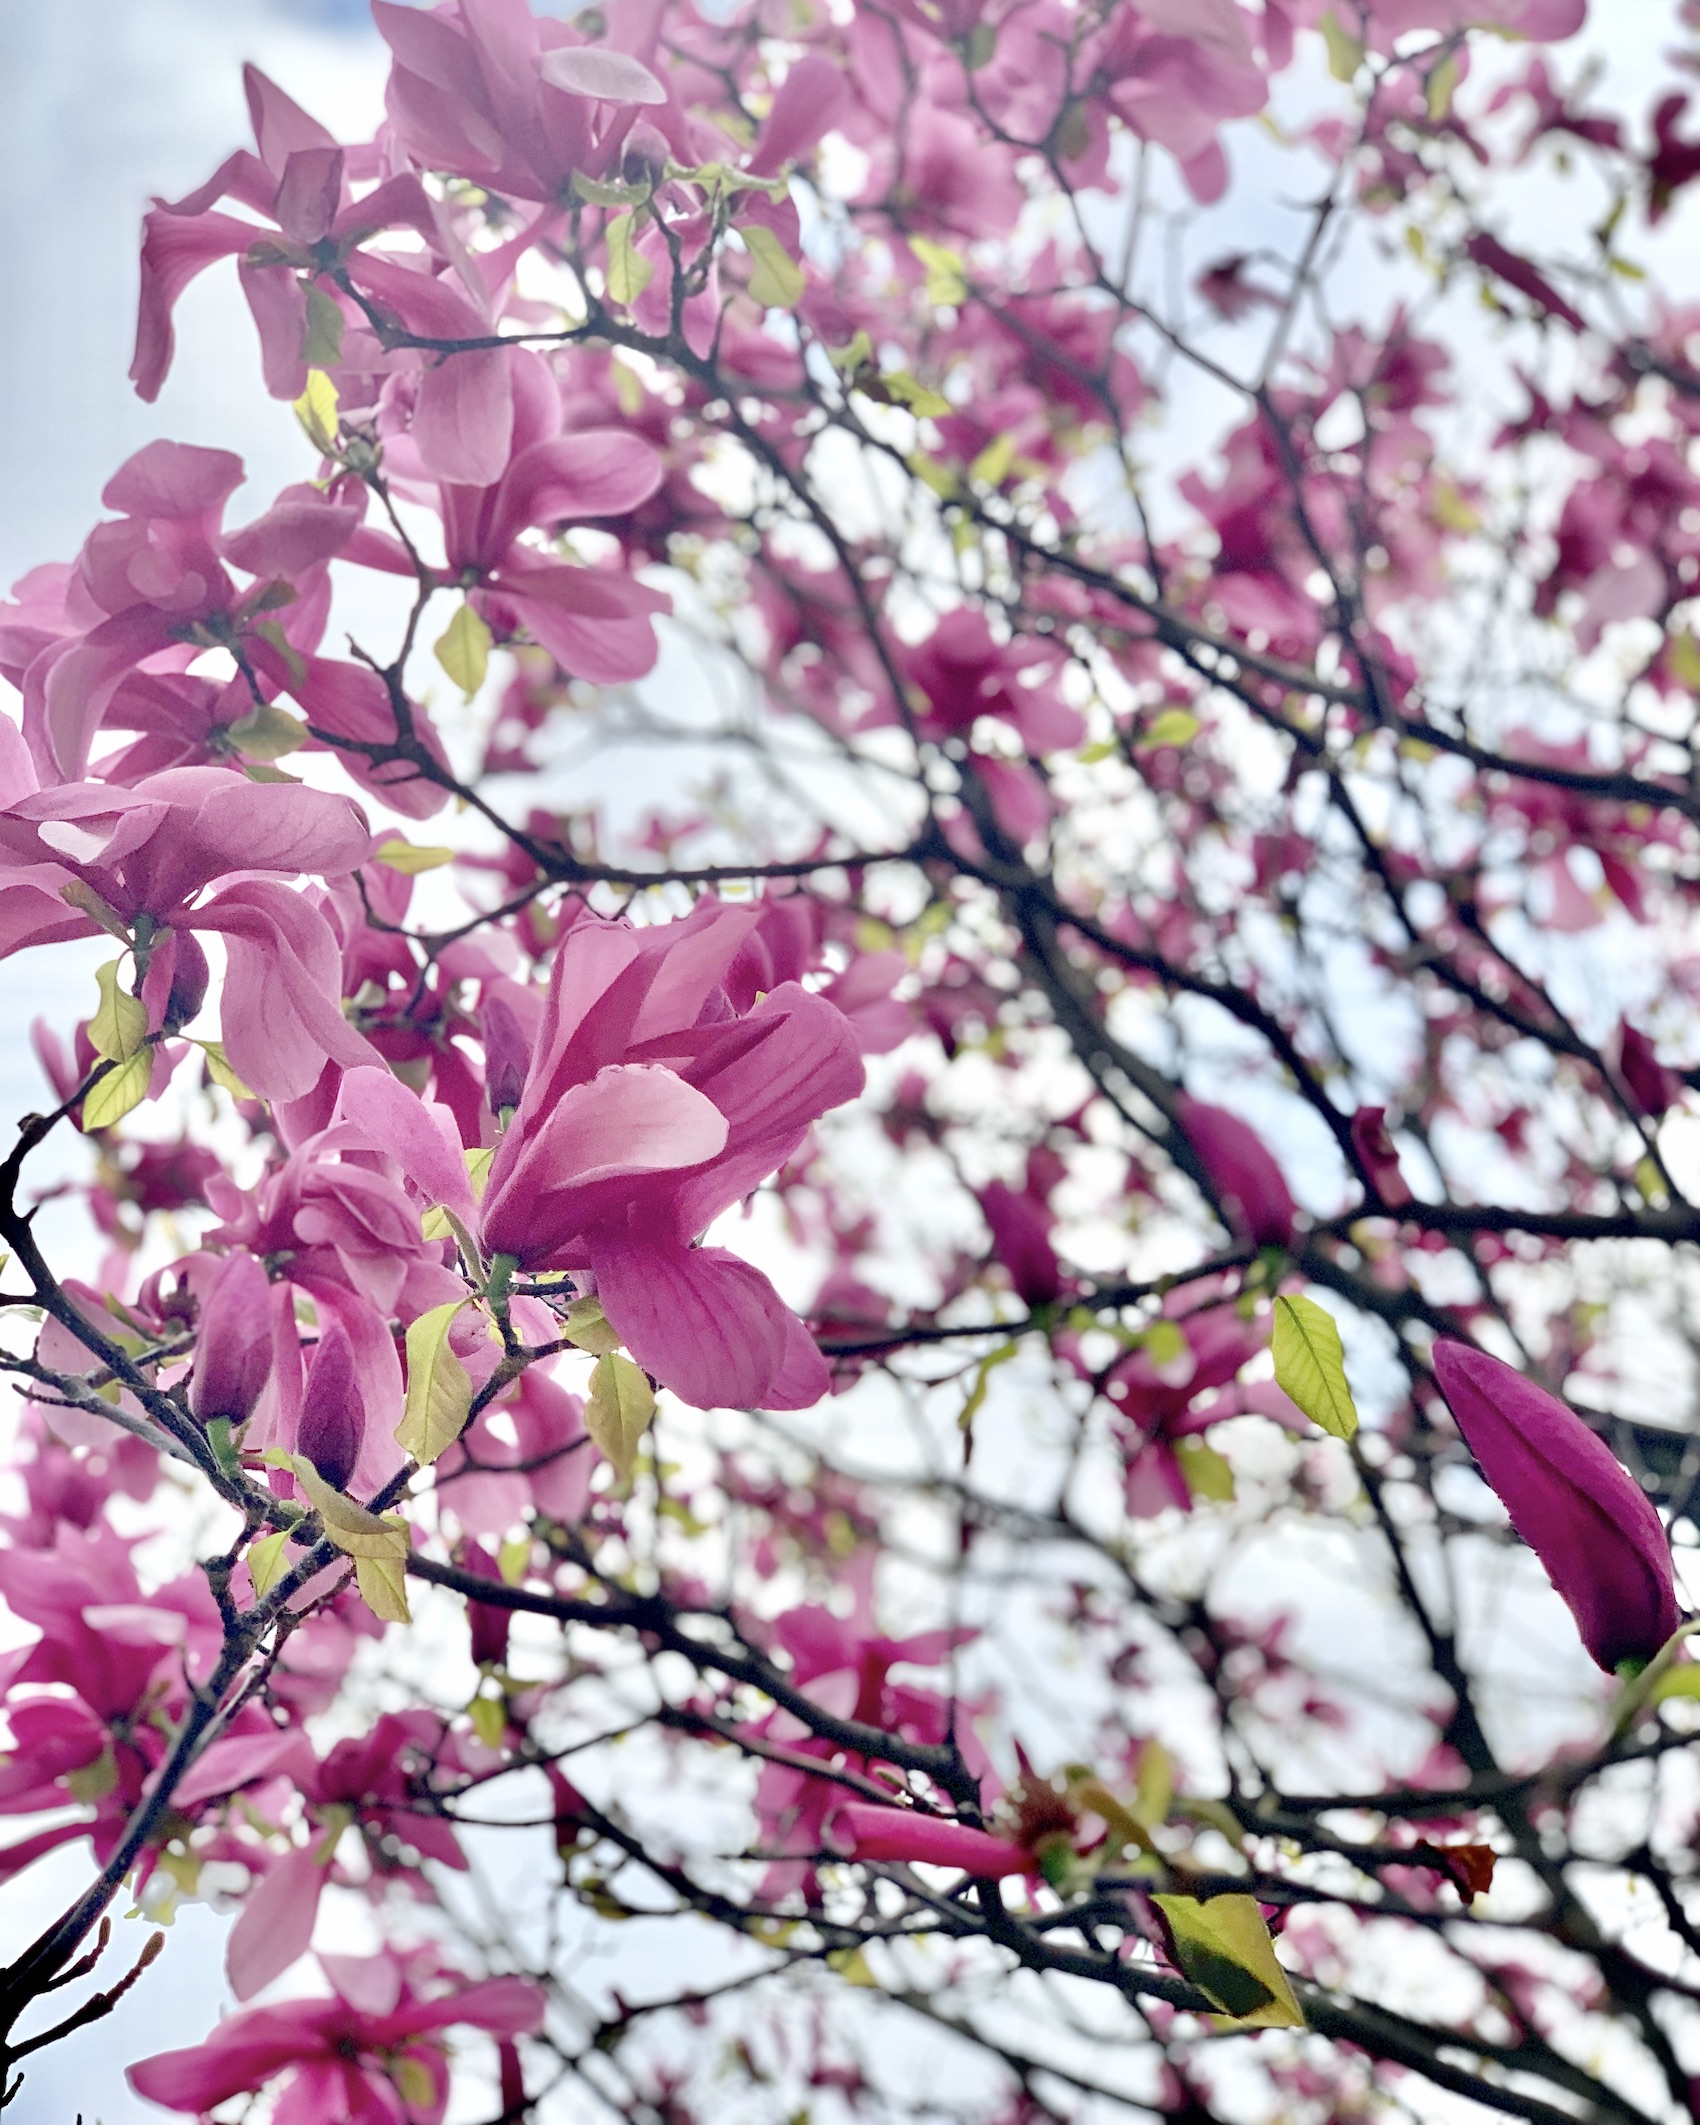 Magnolias at the Palais Royal in Paris